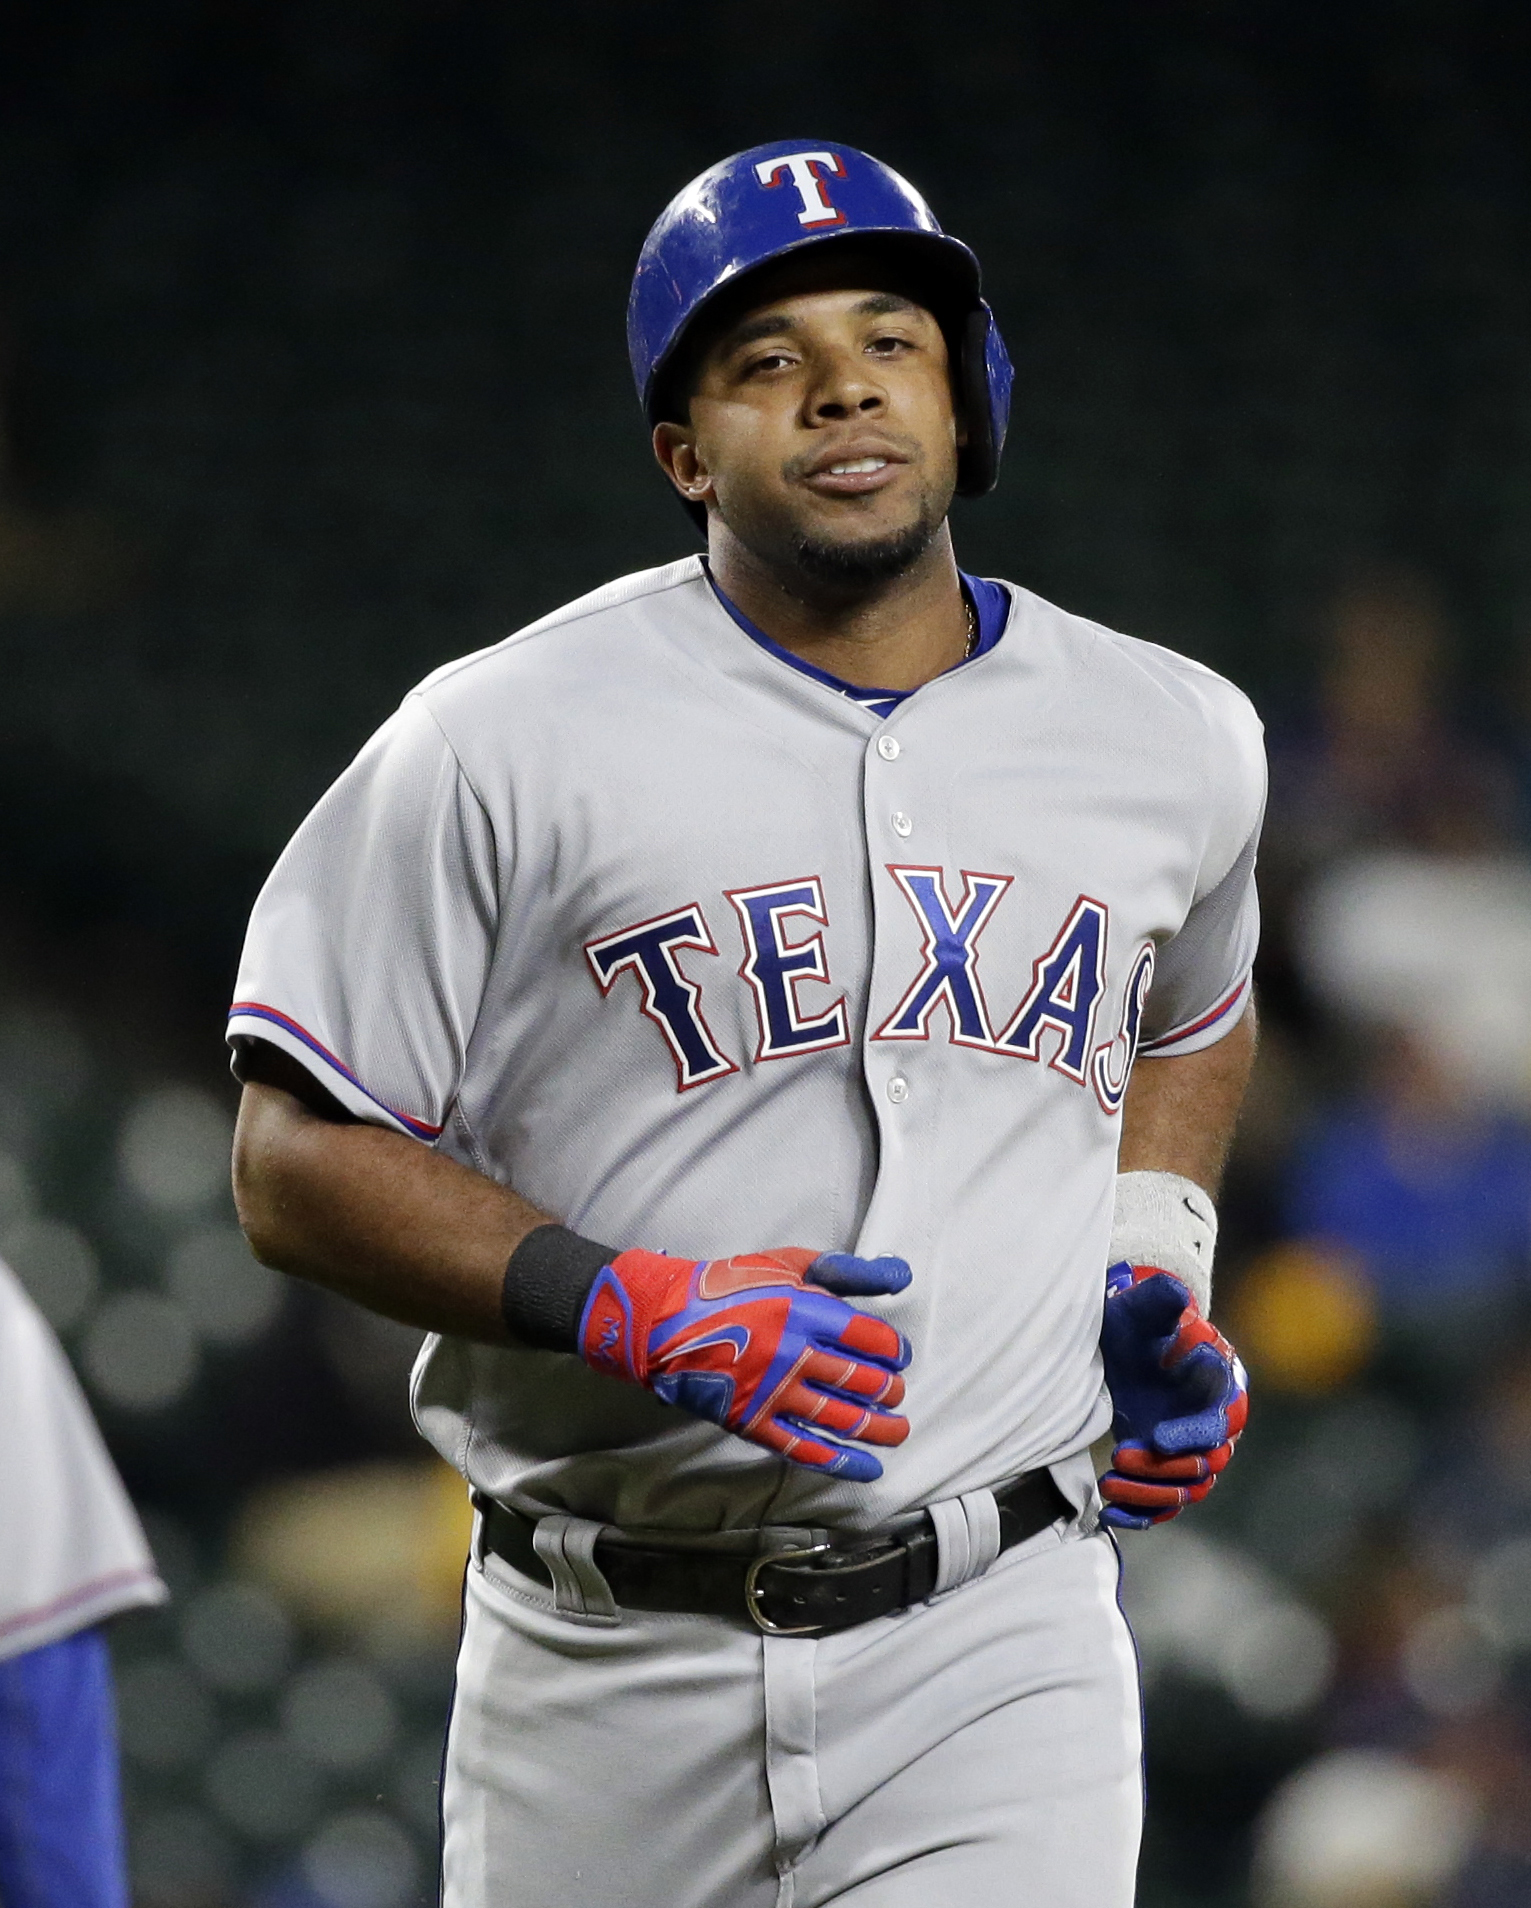 Texas Rangers' Elvis Andrus heads home on his home run against the Seattle Mariners during the seventh inning of a baseball game Tuesday, Sept. 6, 2016, in Seattle. (AP Photo/Elaine Thompson)